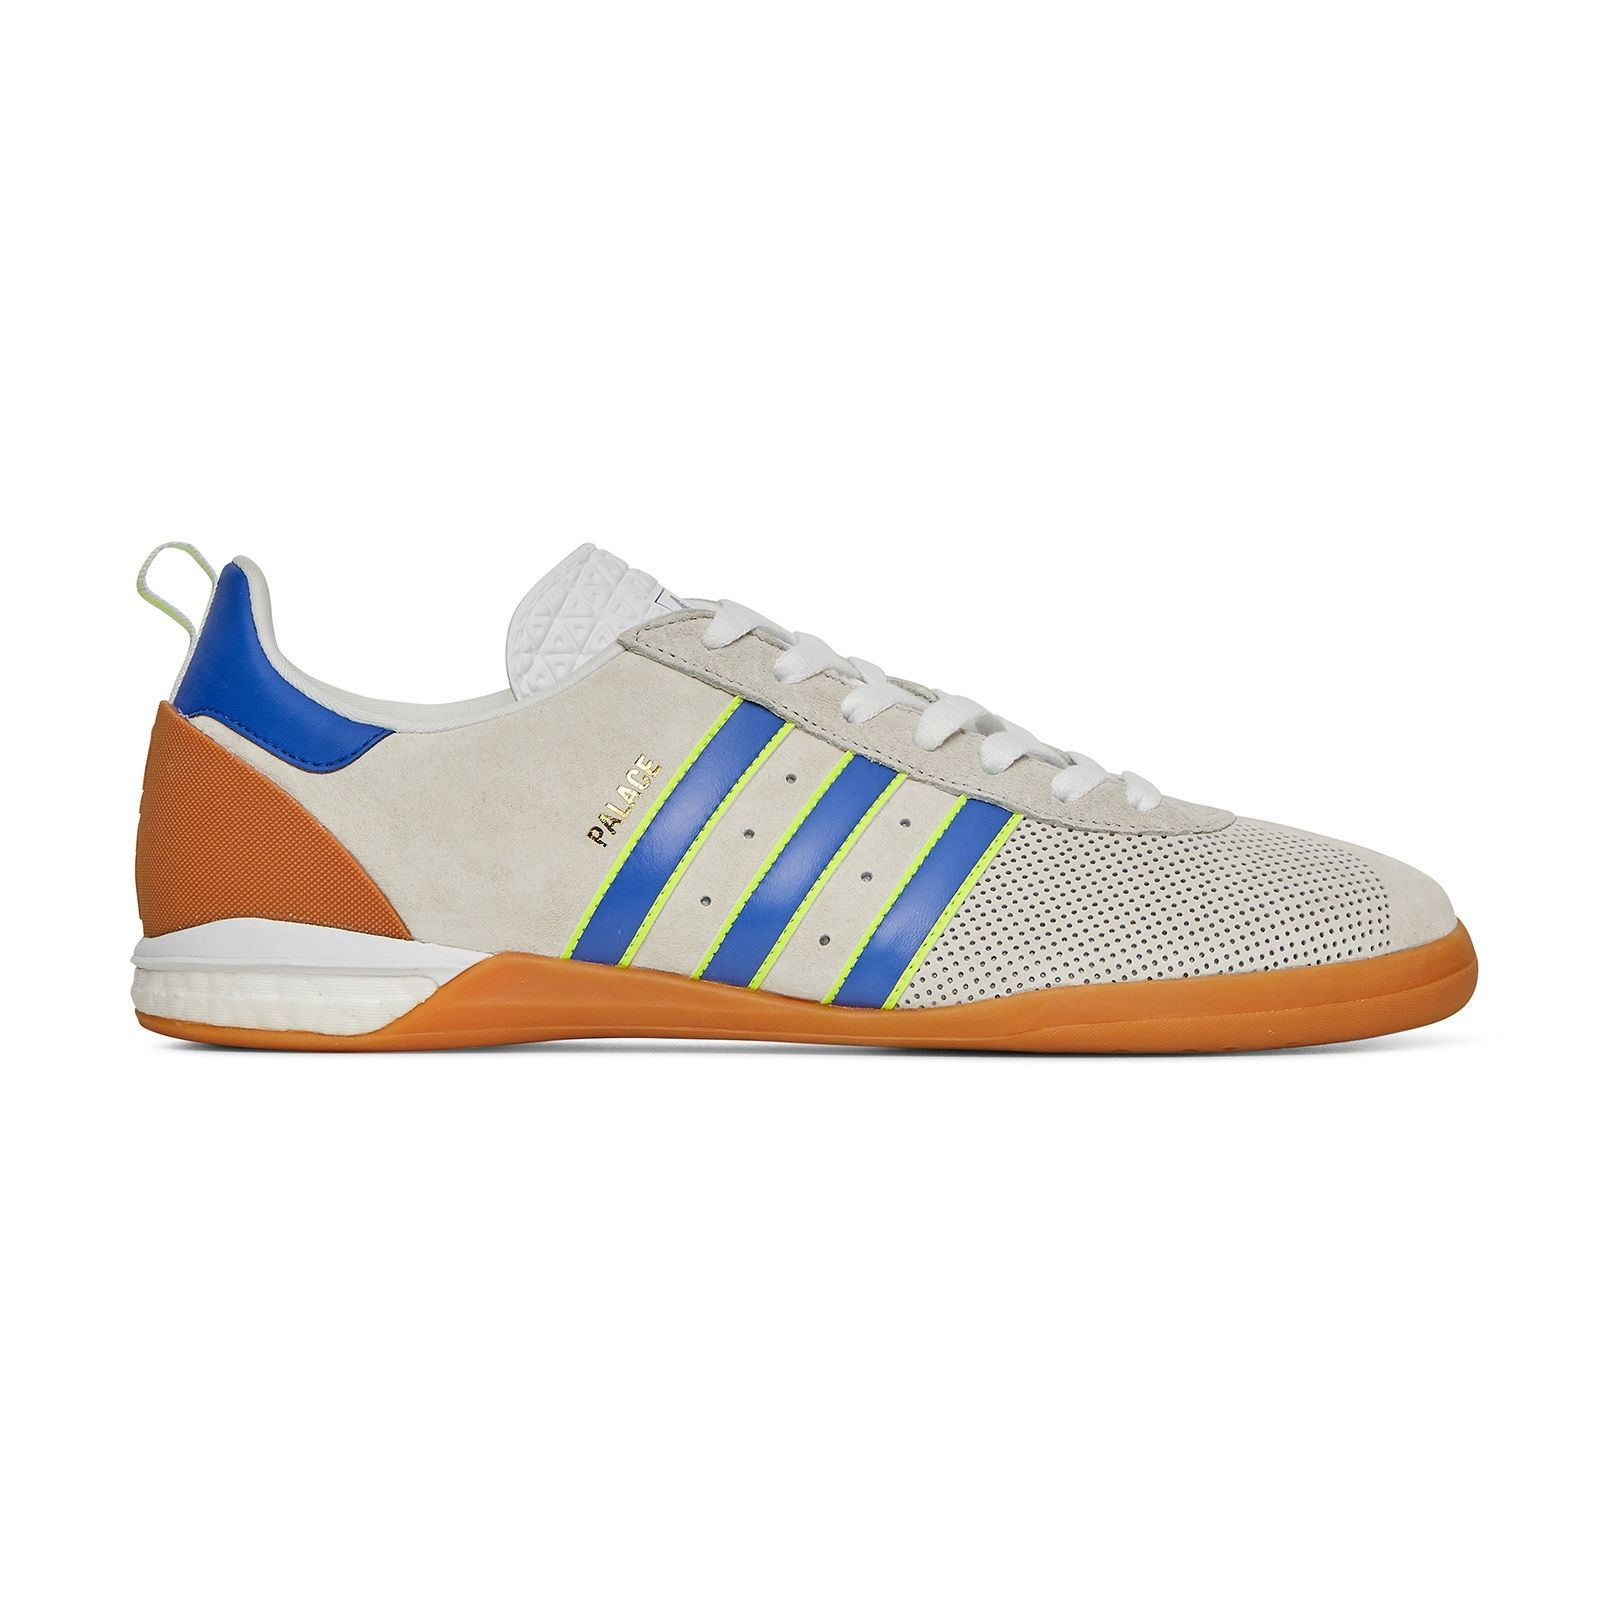 adidas originals Indoor Sneakers By Palace Skateboards